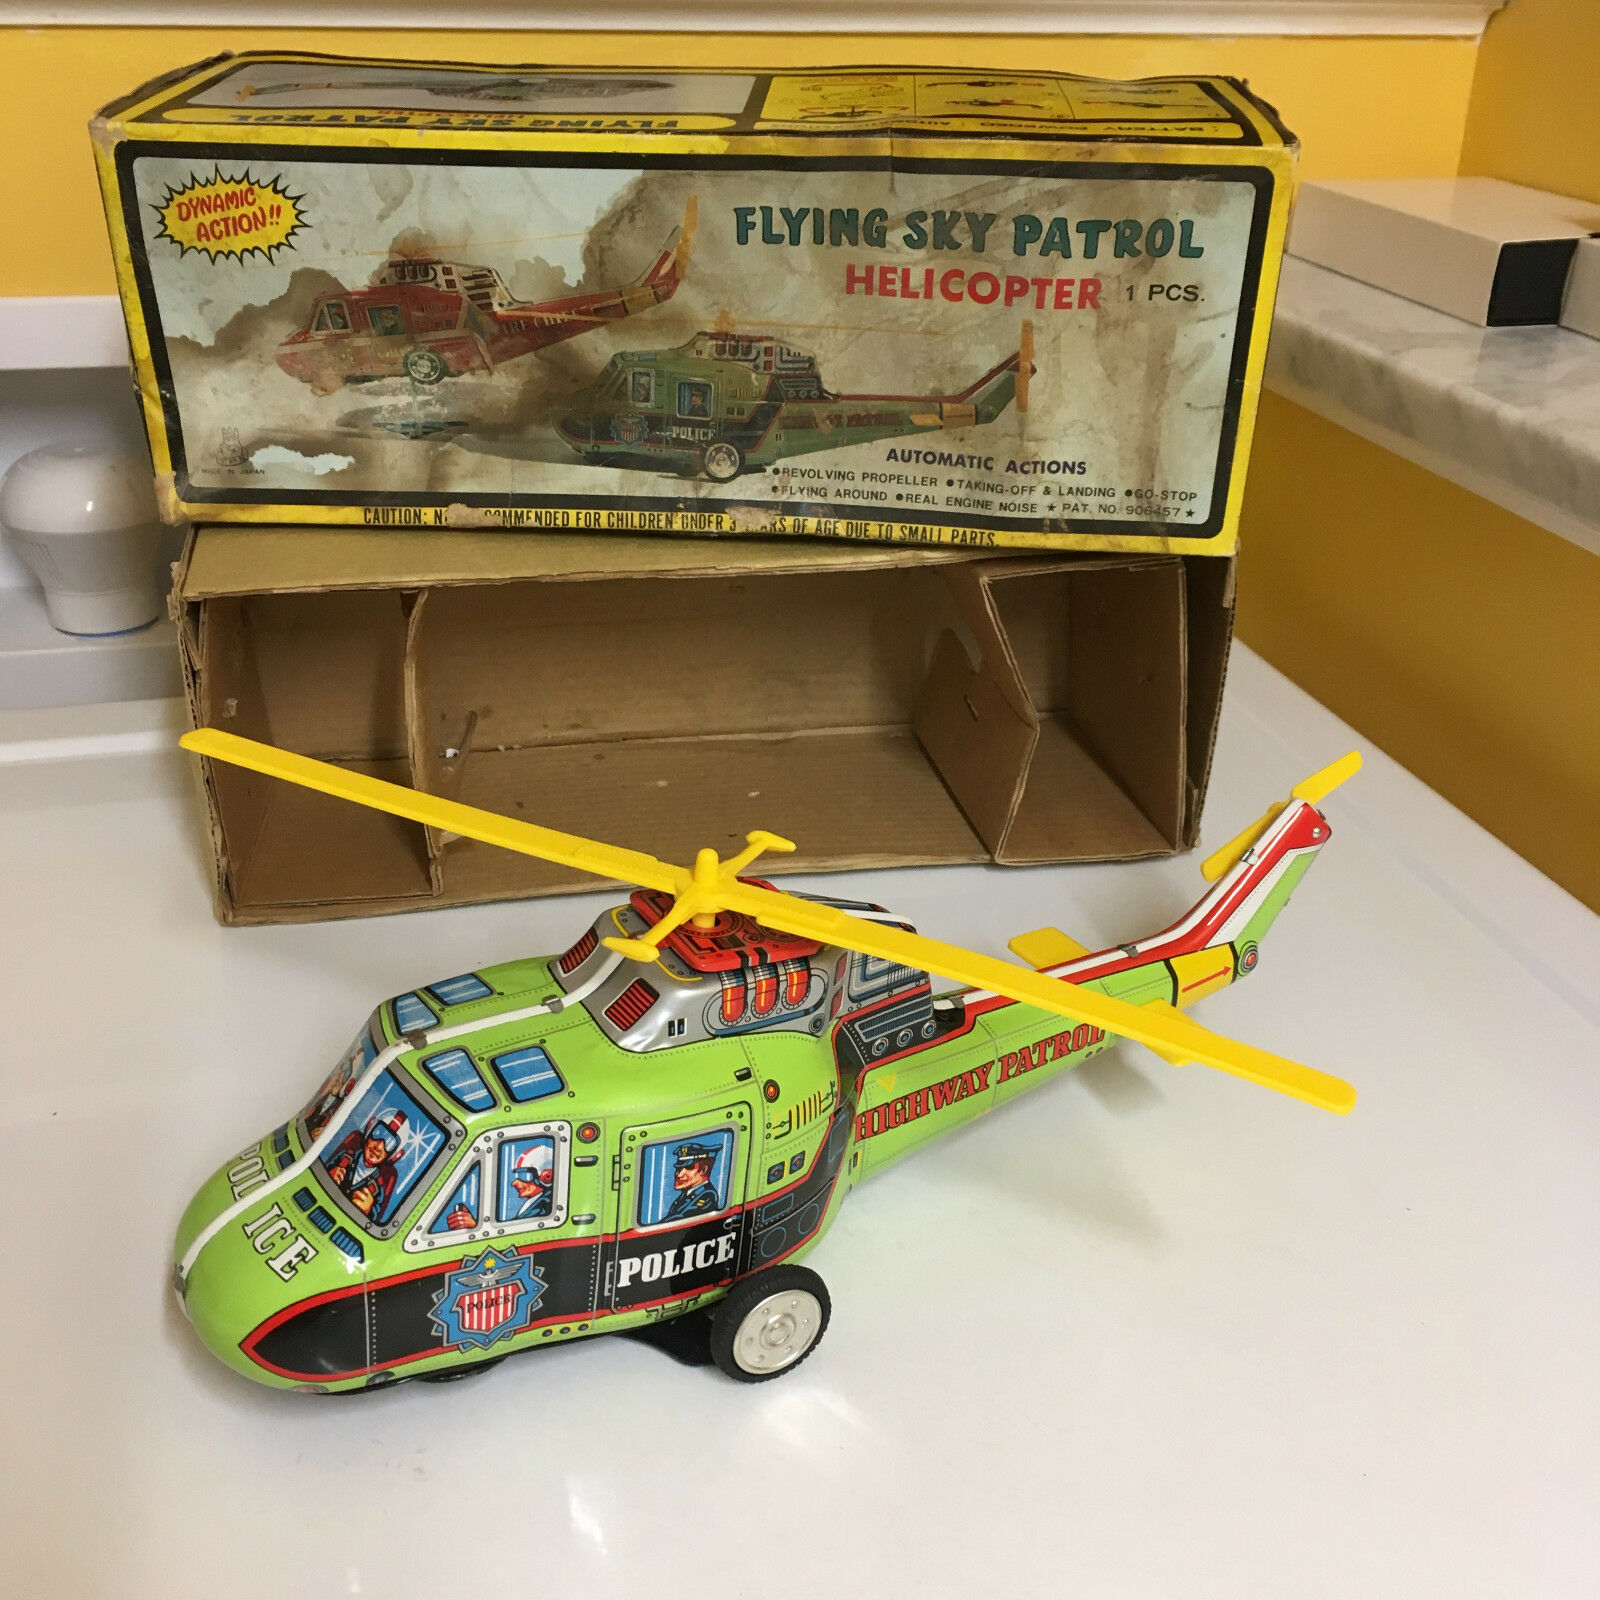 TPS TIN fliegen SKY PATROL HELICOPTER W BOX & FULLY WORKING AS DESIGNED T.P.S.